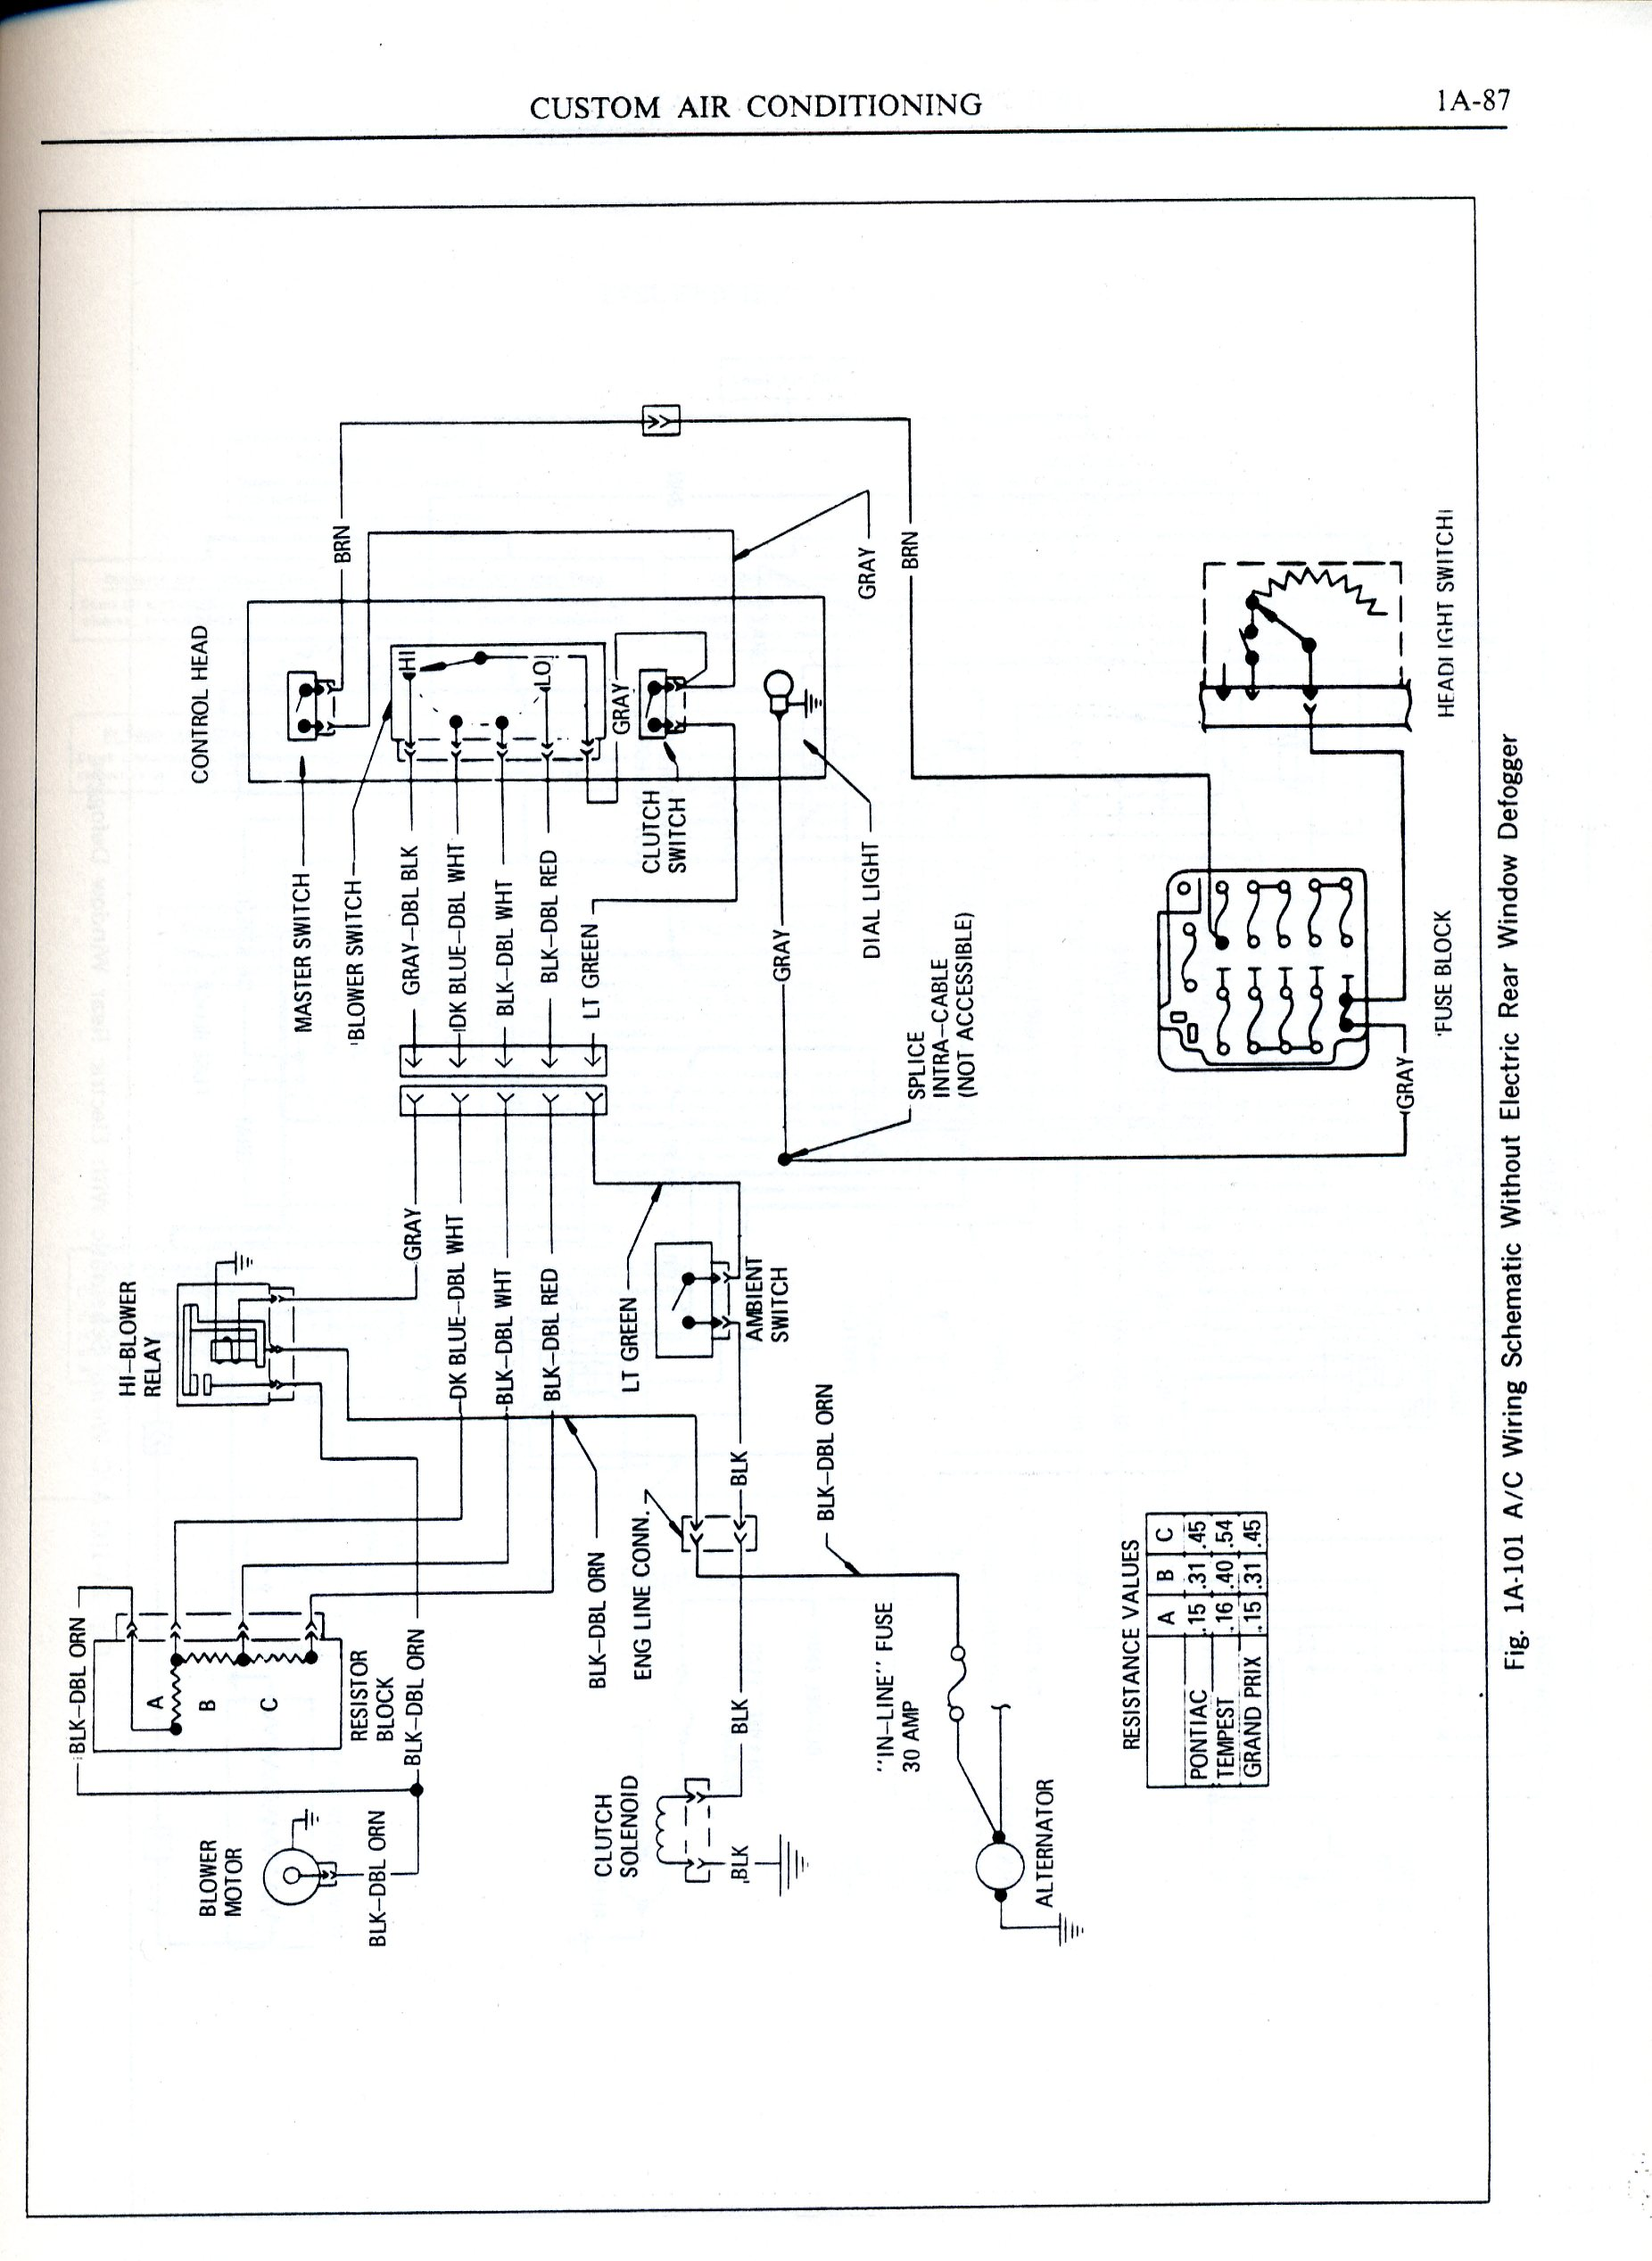 Diagram Wiring Schematic For 1970 Gto Wiring Diagram Full Version Hd Quality Wiring Diagram Hadoopclassdiagram Supersonicmusicarena It